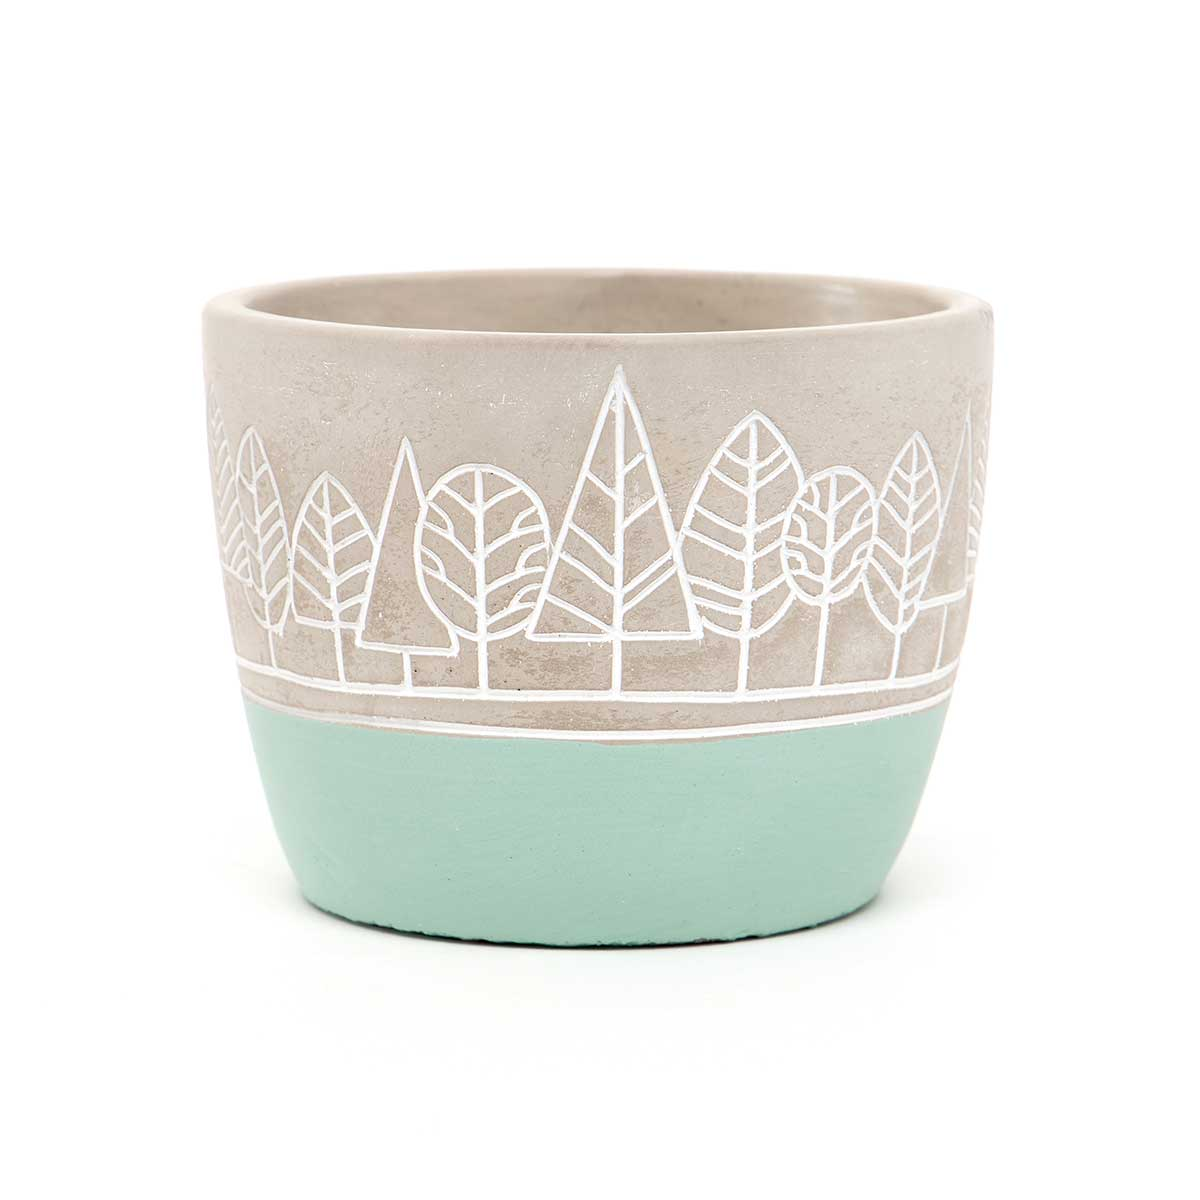 "TREE DESIGN CONCRETE POT WITH TEAL BOTTOM SMALL 5""x4.75"""